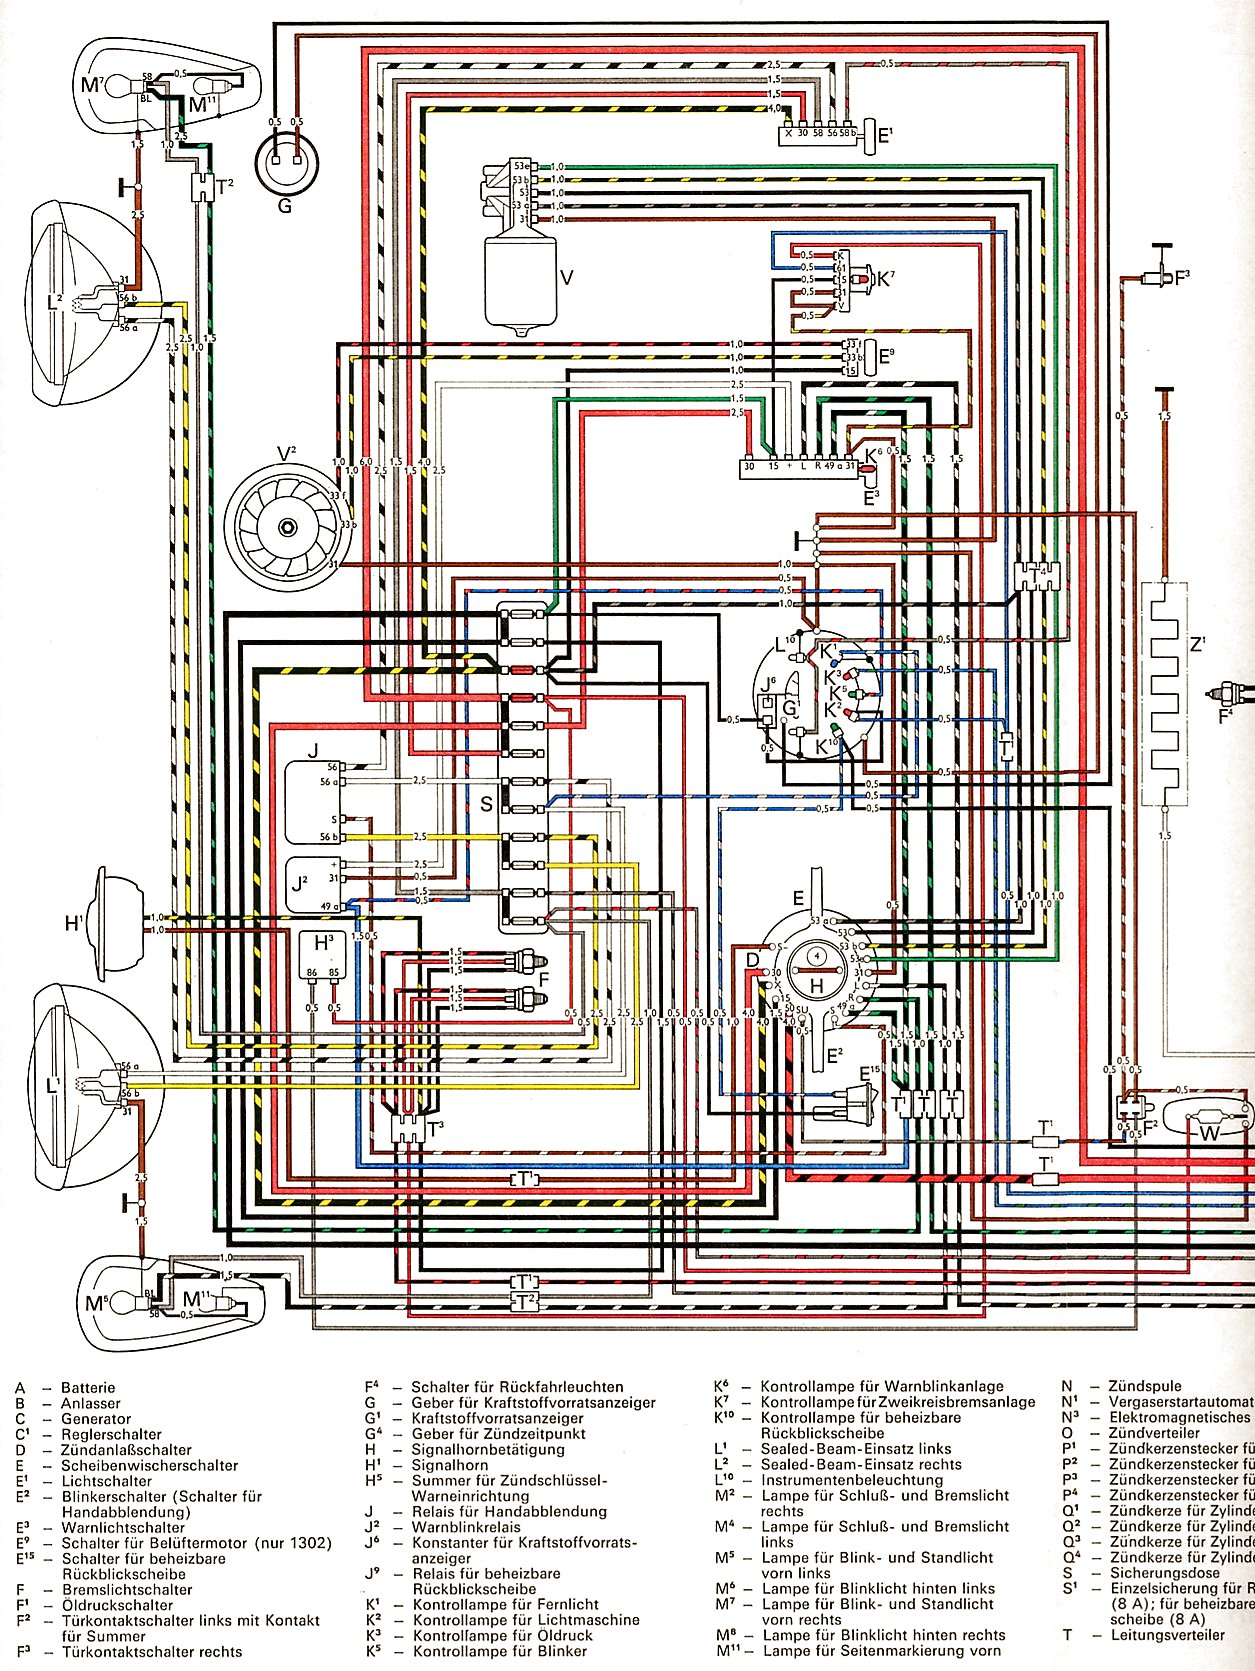 1300_and_1302_USA_from_August_1971 1 wiring diagram shoptalkforums com vw thing wiring diagram at nearapp.co